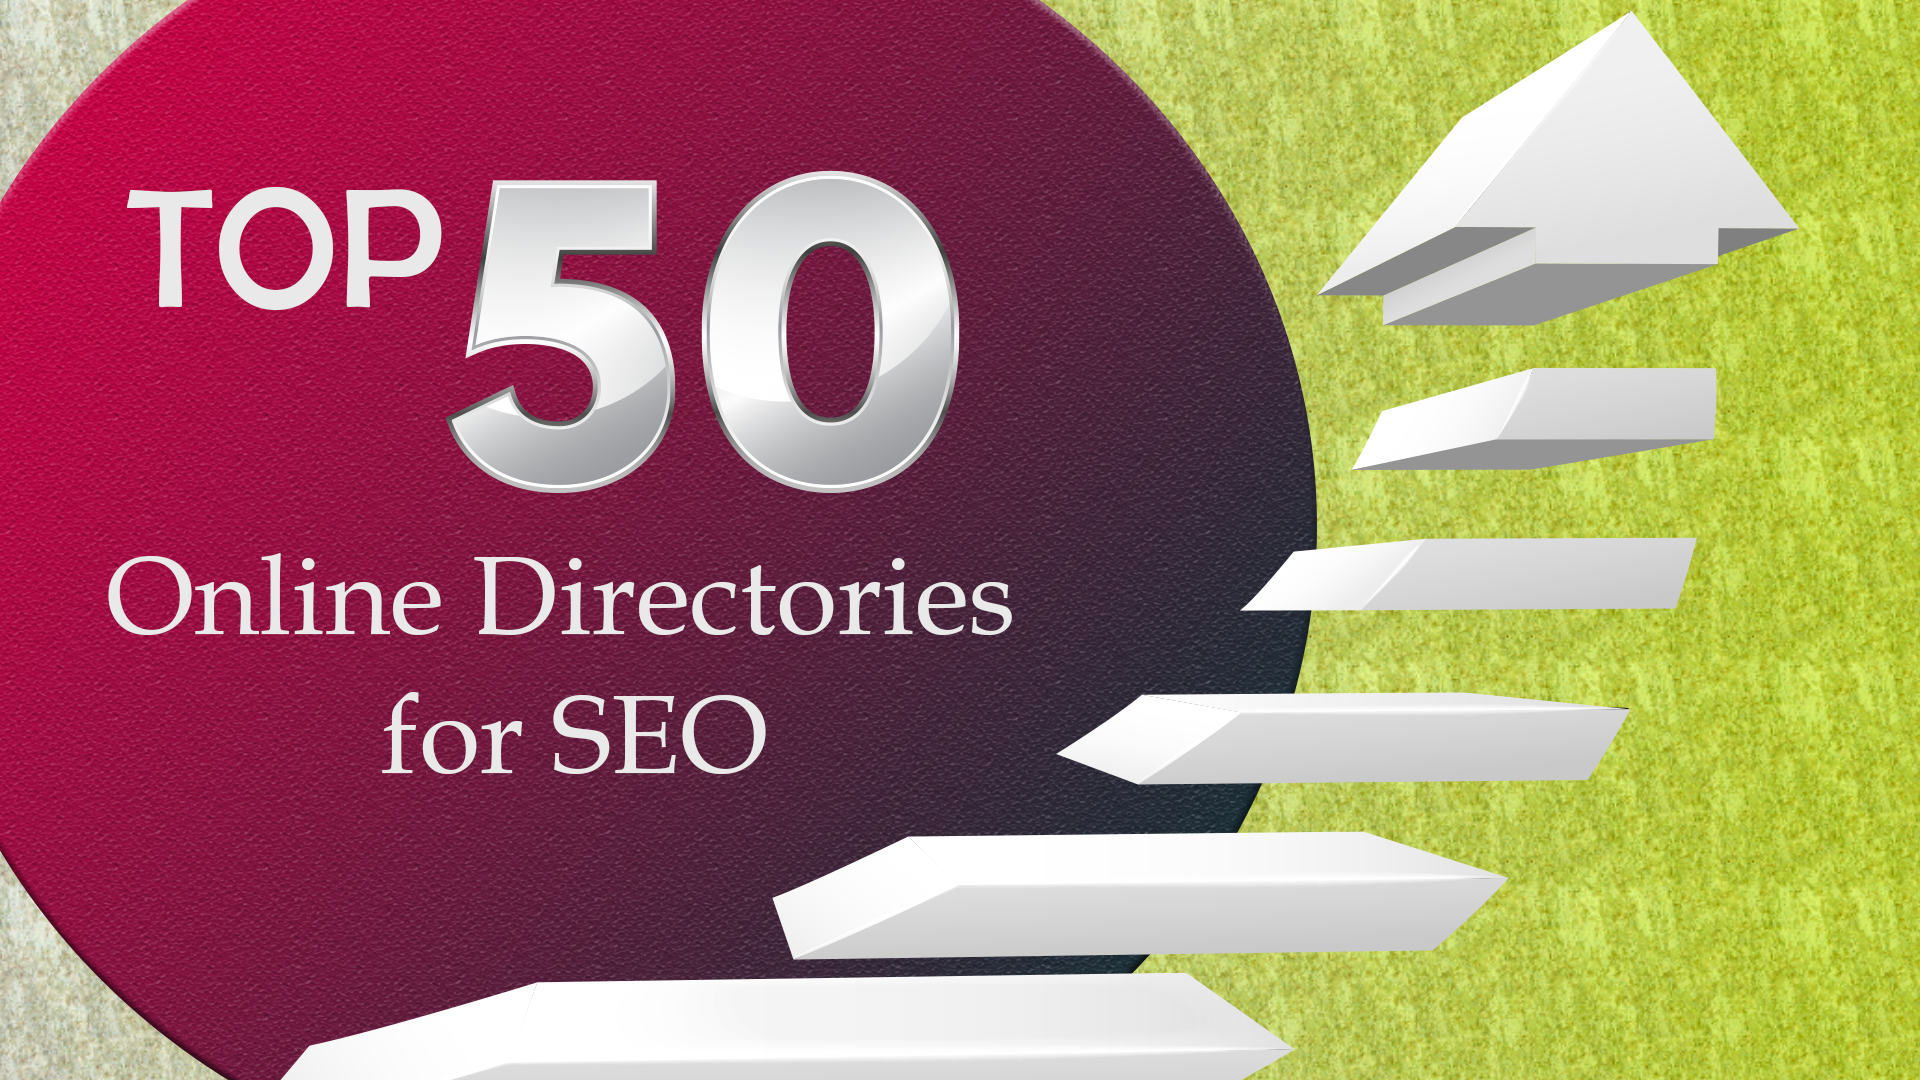 Top 50 SEO Online Directories Graphic